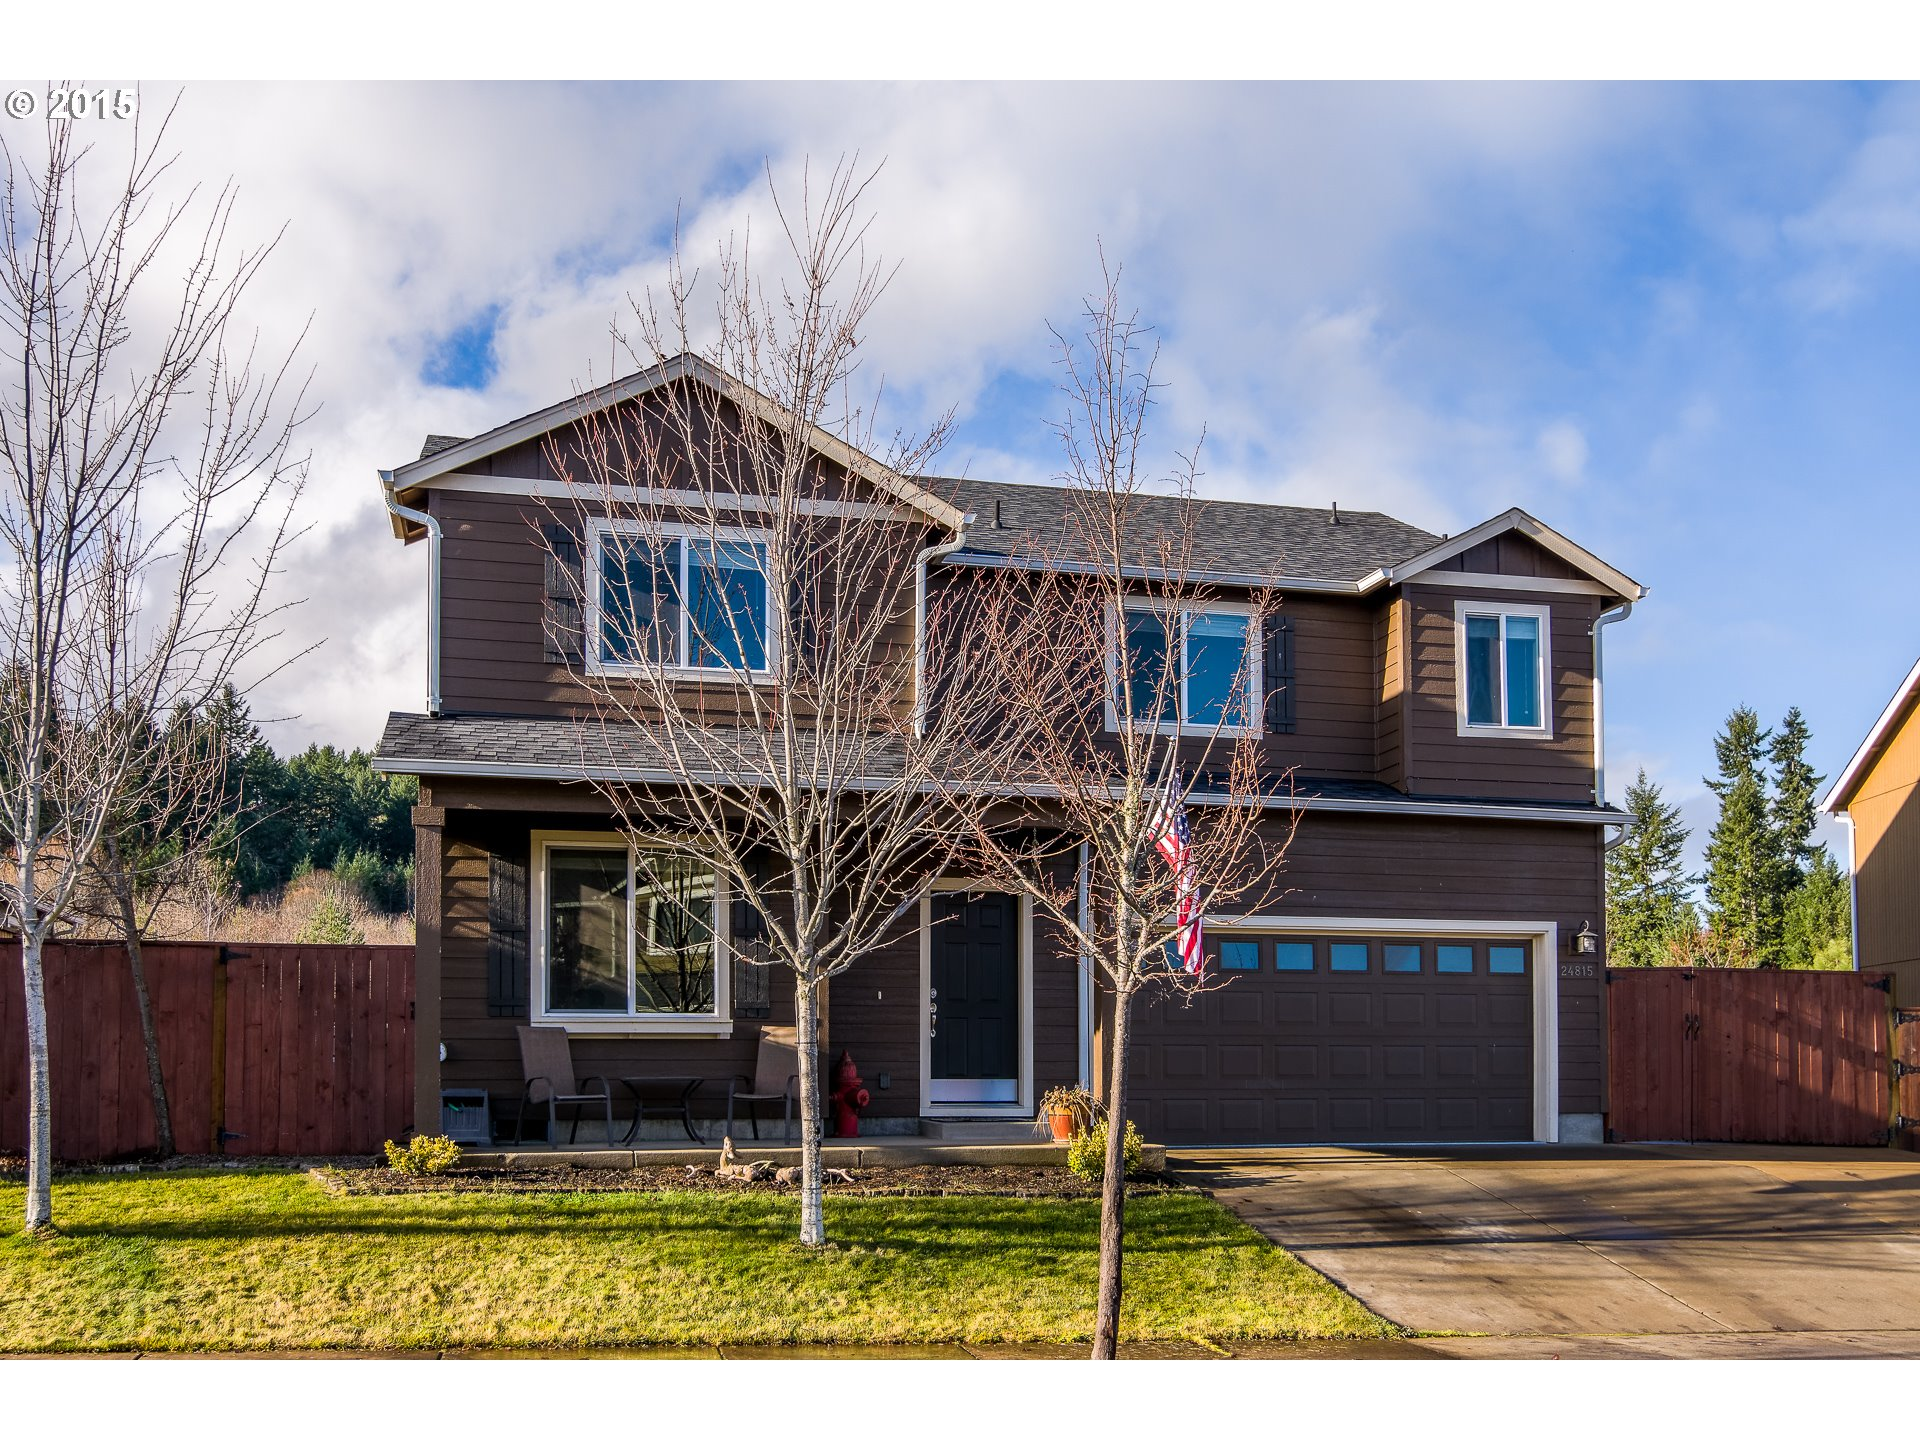 24815 Hawk View Dr, Veneta, OR